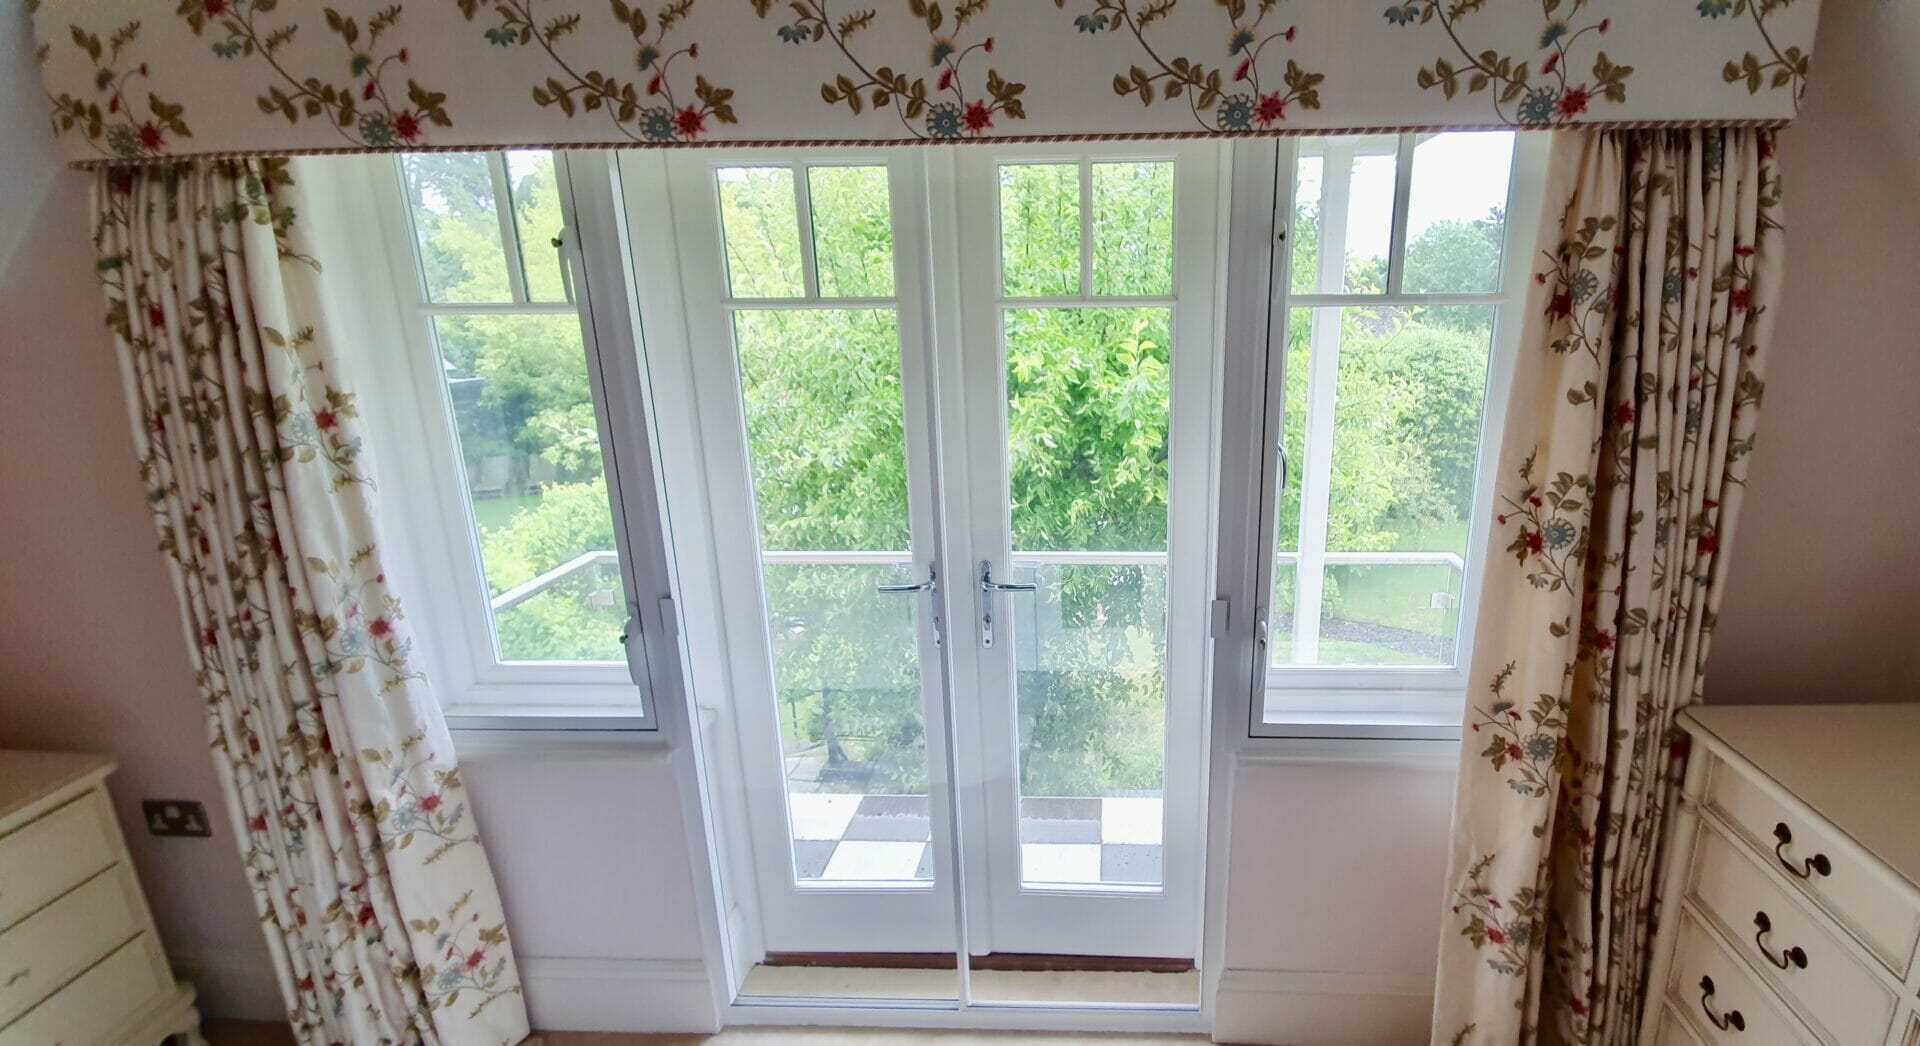 04. Side windows fitted with casement(hinge windows) for noise reduction